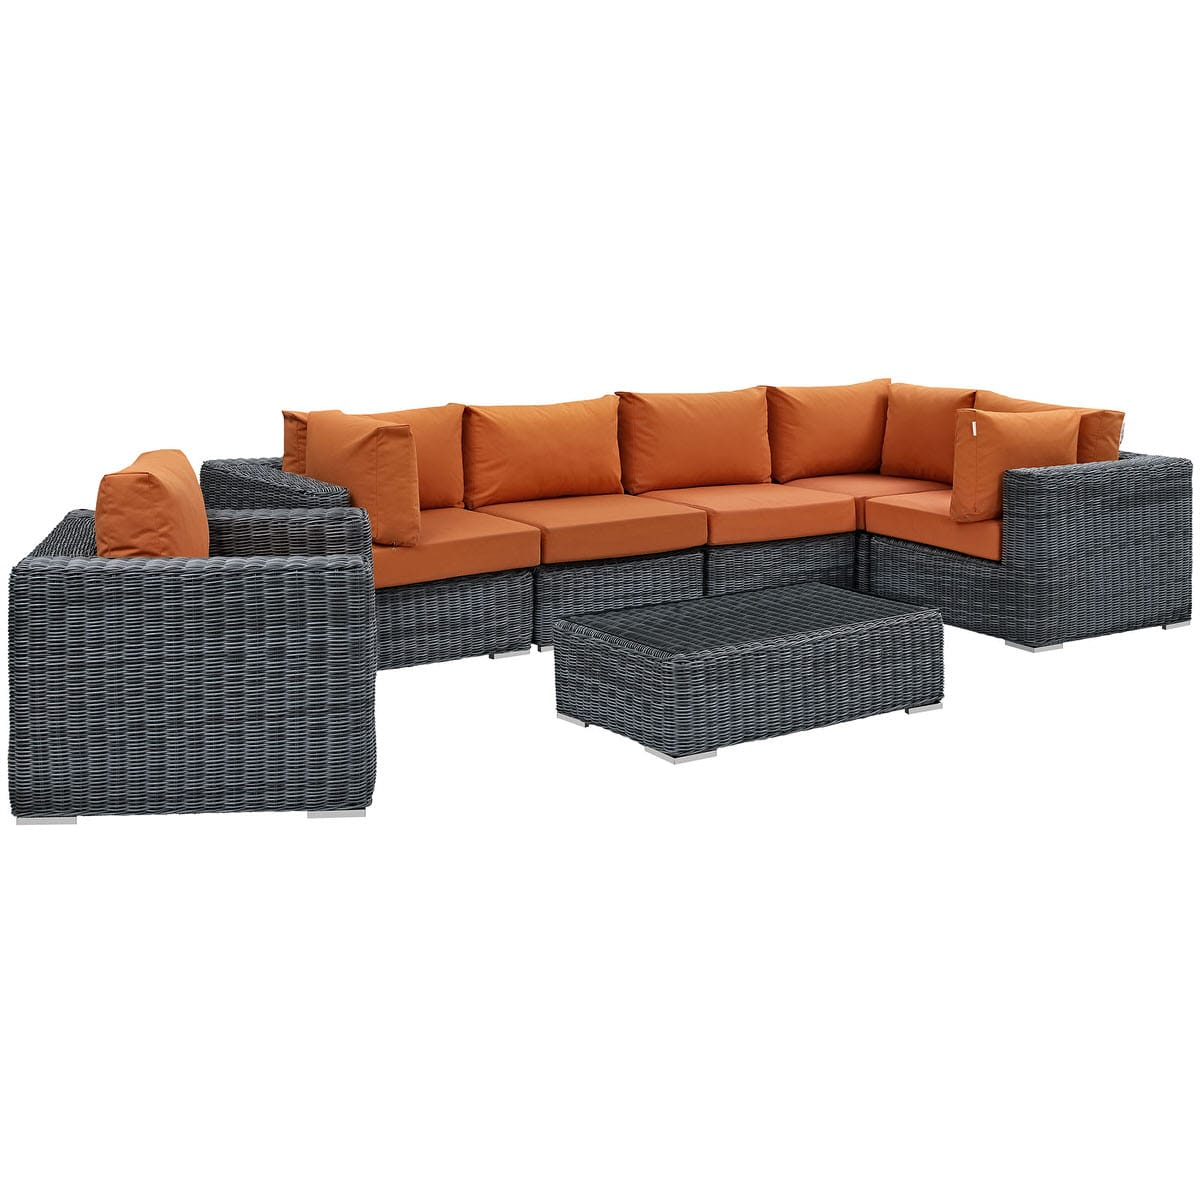 Superbe Summon 7 Piece Outdoor Patio Sunbrella Sectional Set Canvas Tuscan By  Modern Living (Modern Living